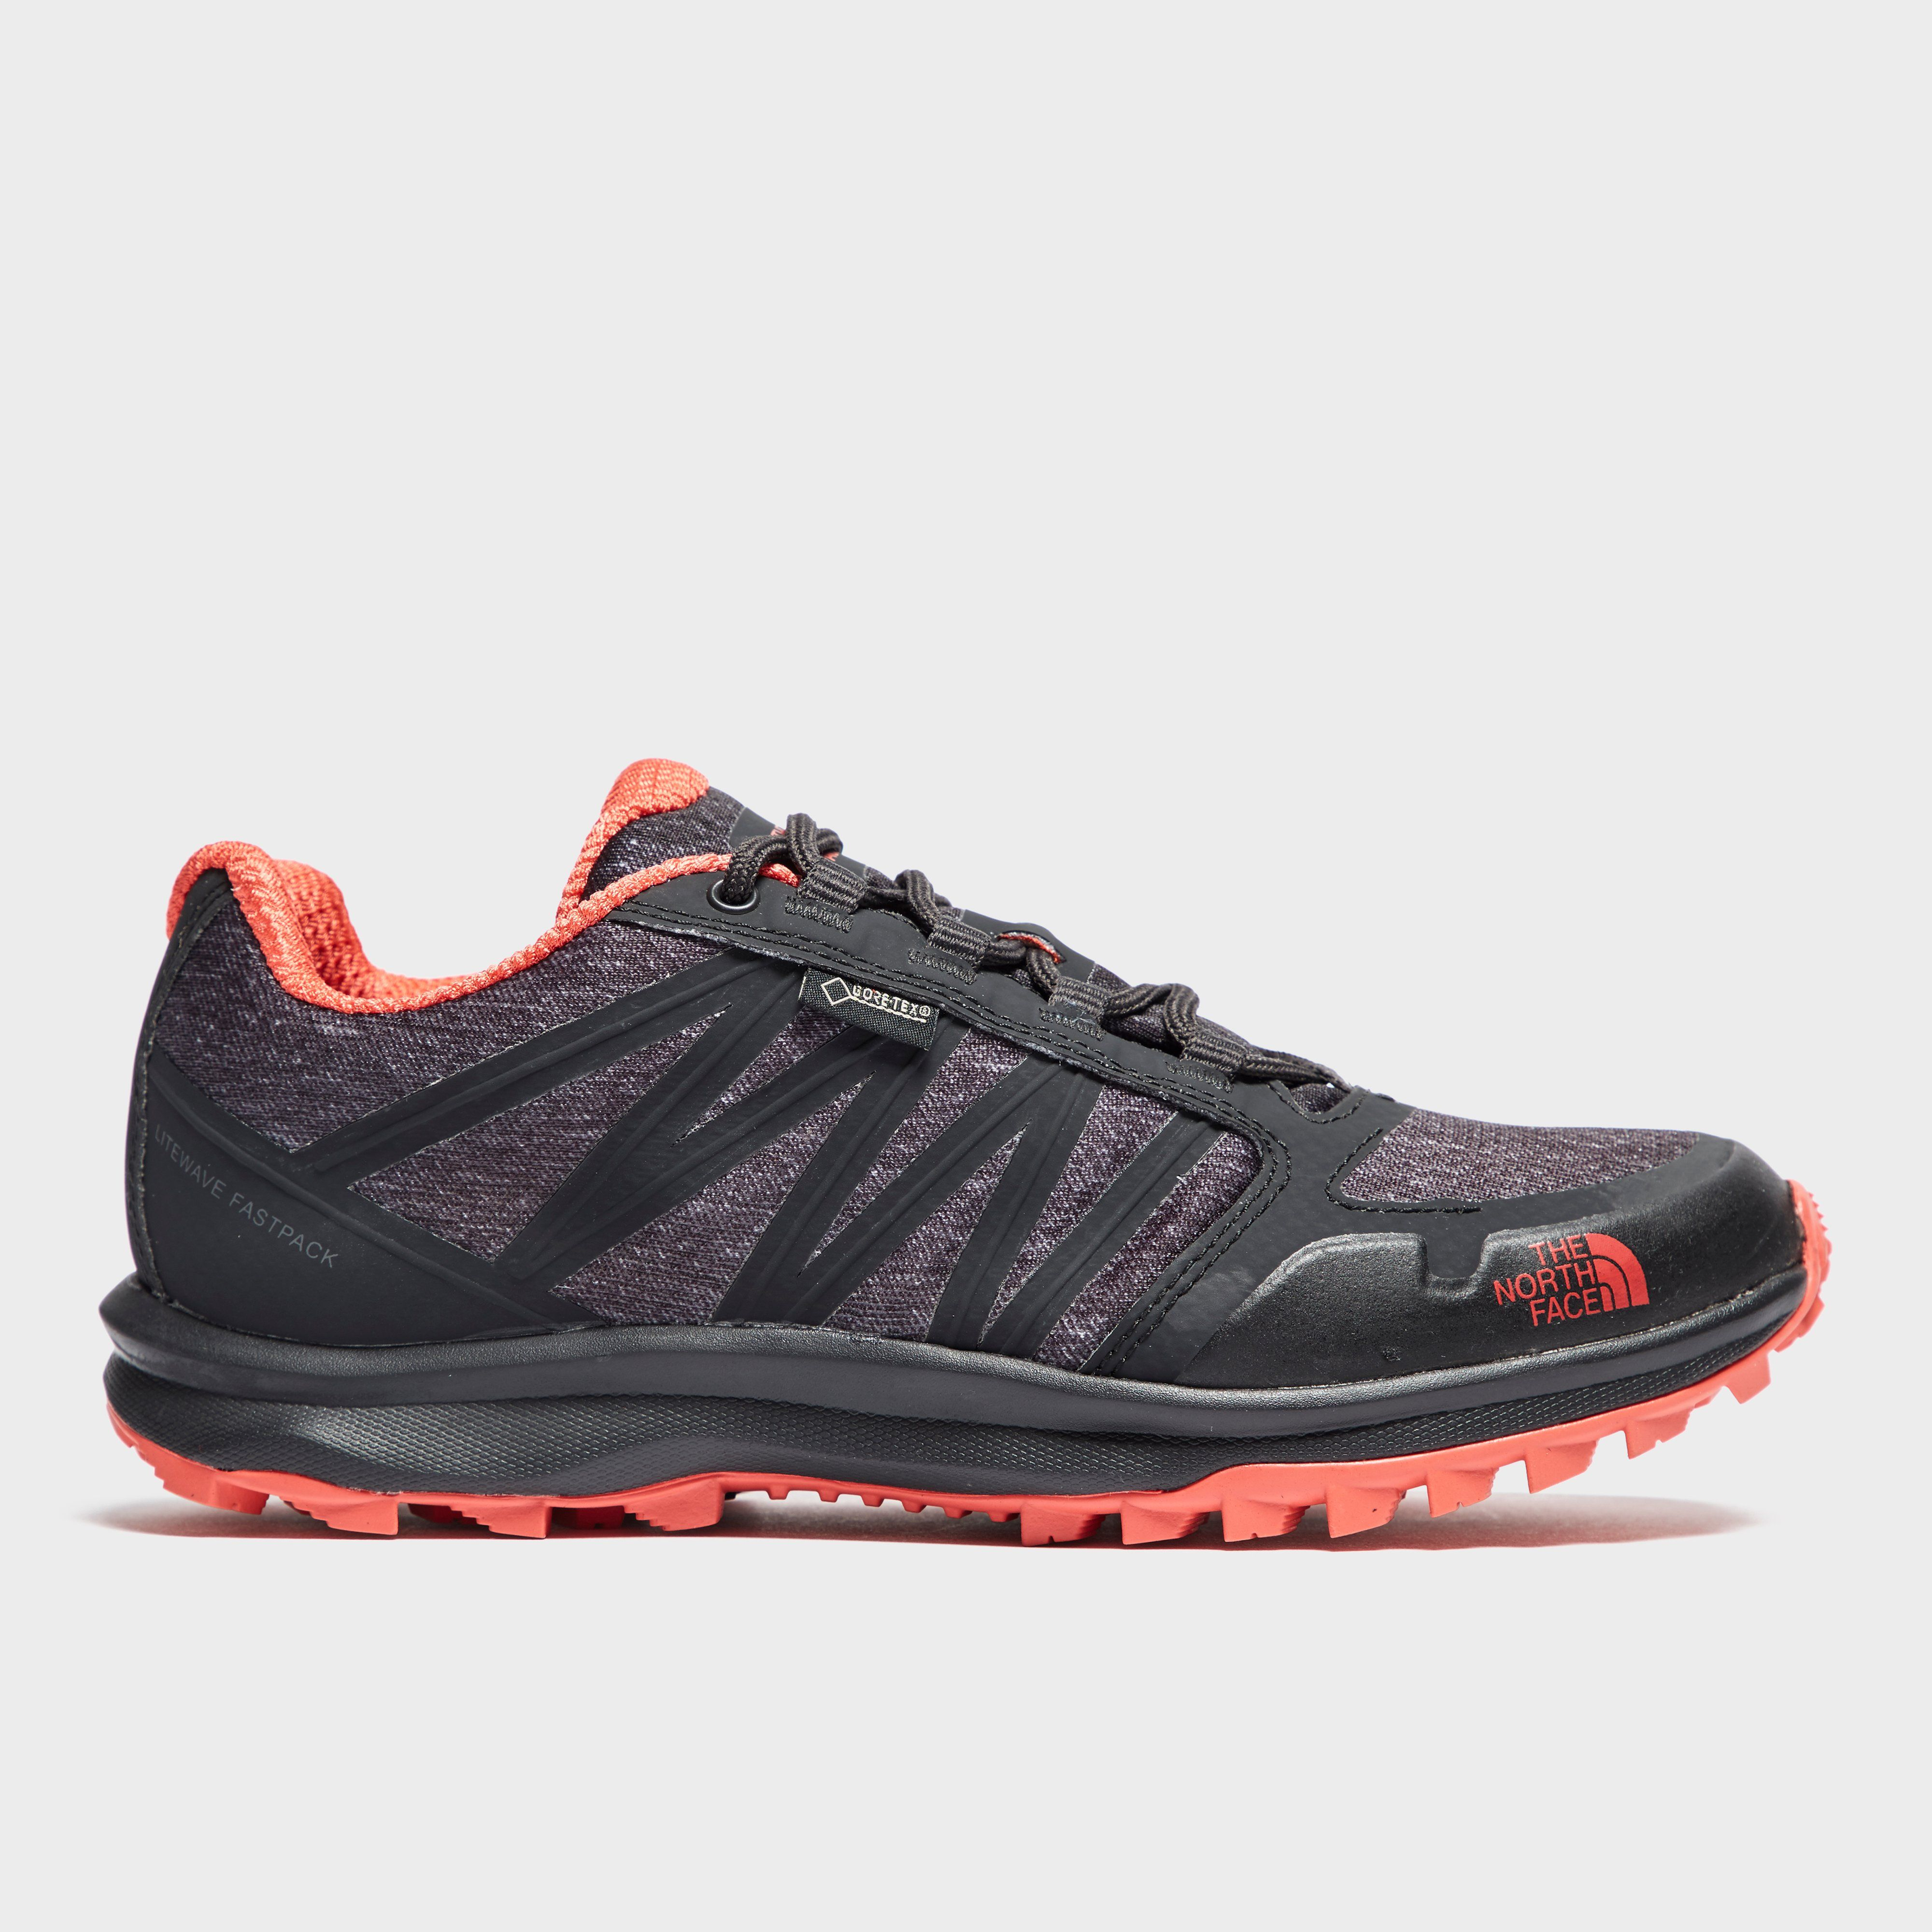 THE NORTH FACE Women's Litewave Fast Pack GORE-TEX® Shoes